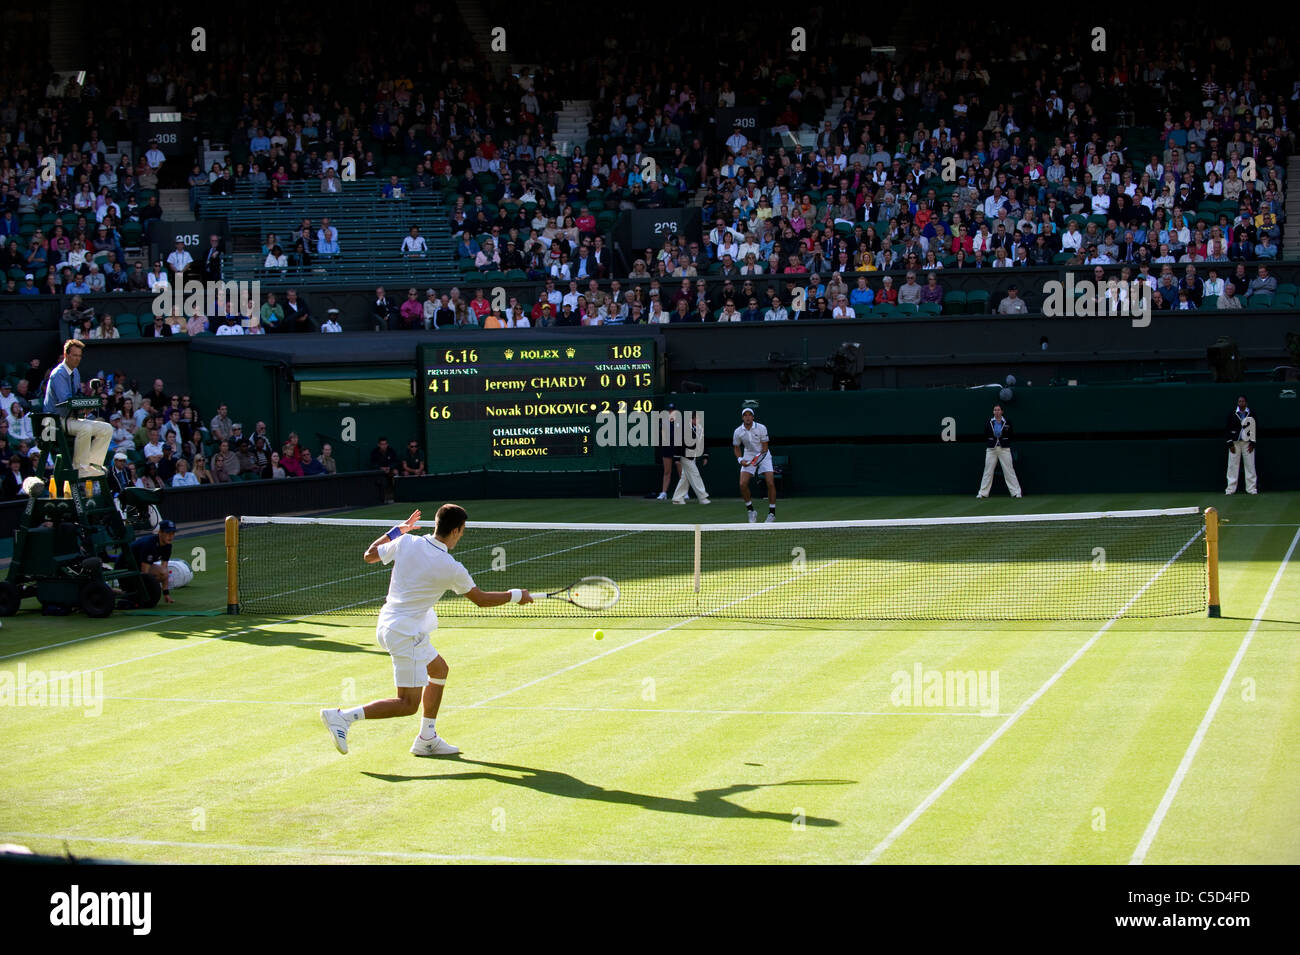 Action during Novak Djokovic (SRB) v Jeremy Chardy (FRA) match on Centre Court during the 2011 Wimbledon Tennis - Stock Image